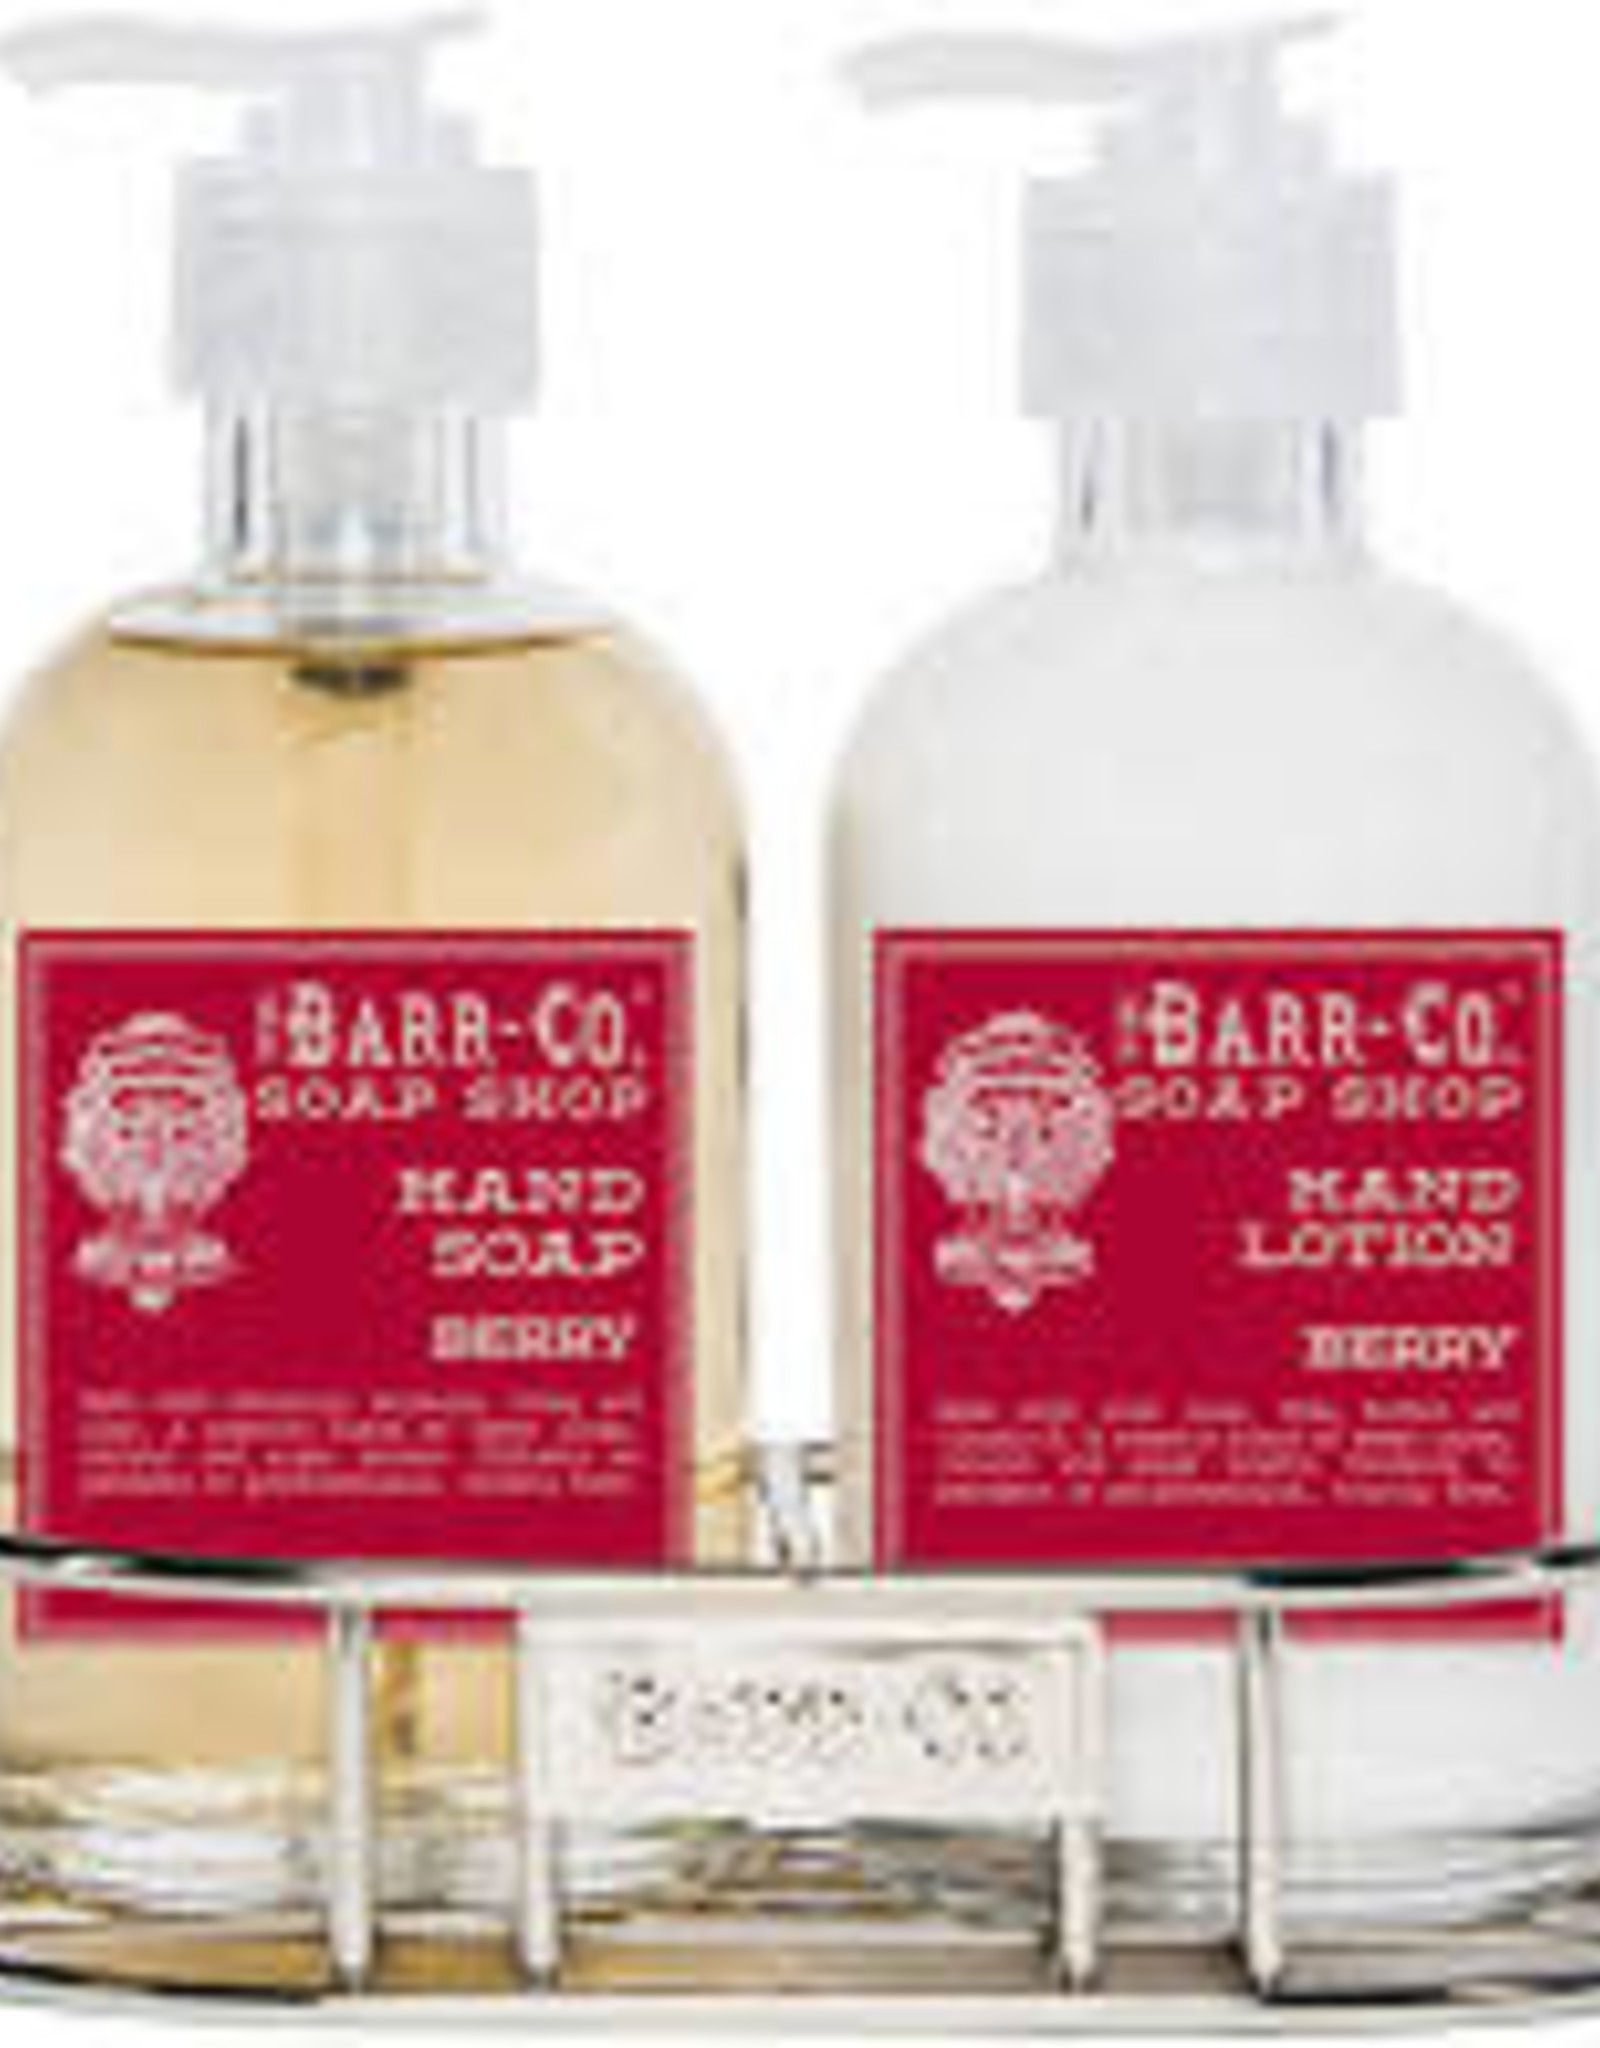 Barr-Co. Barr-Co. Lotion/Soap Caddy Duo Berry